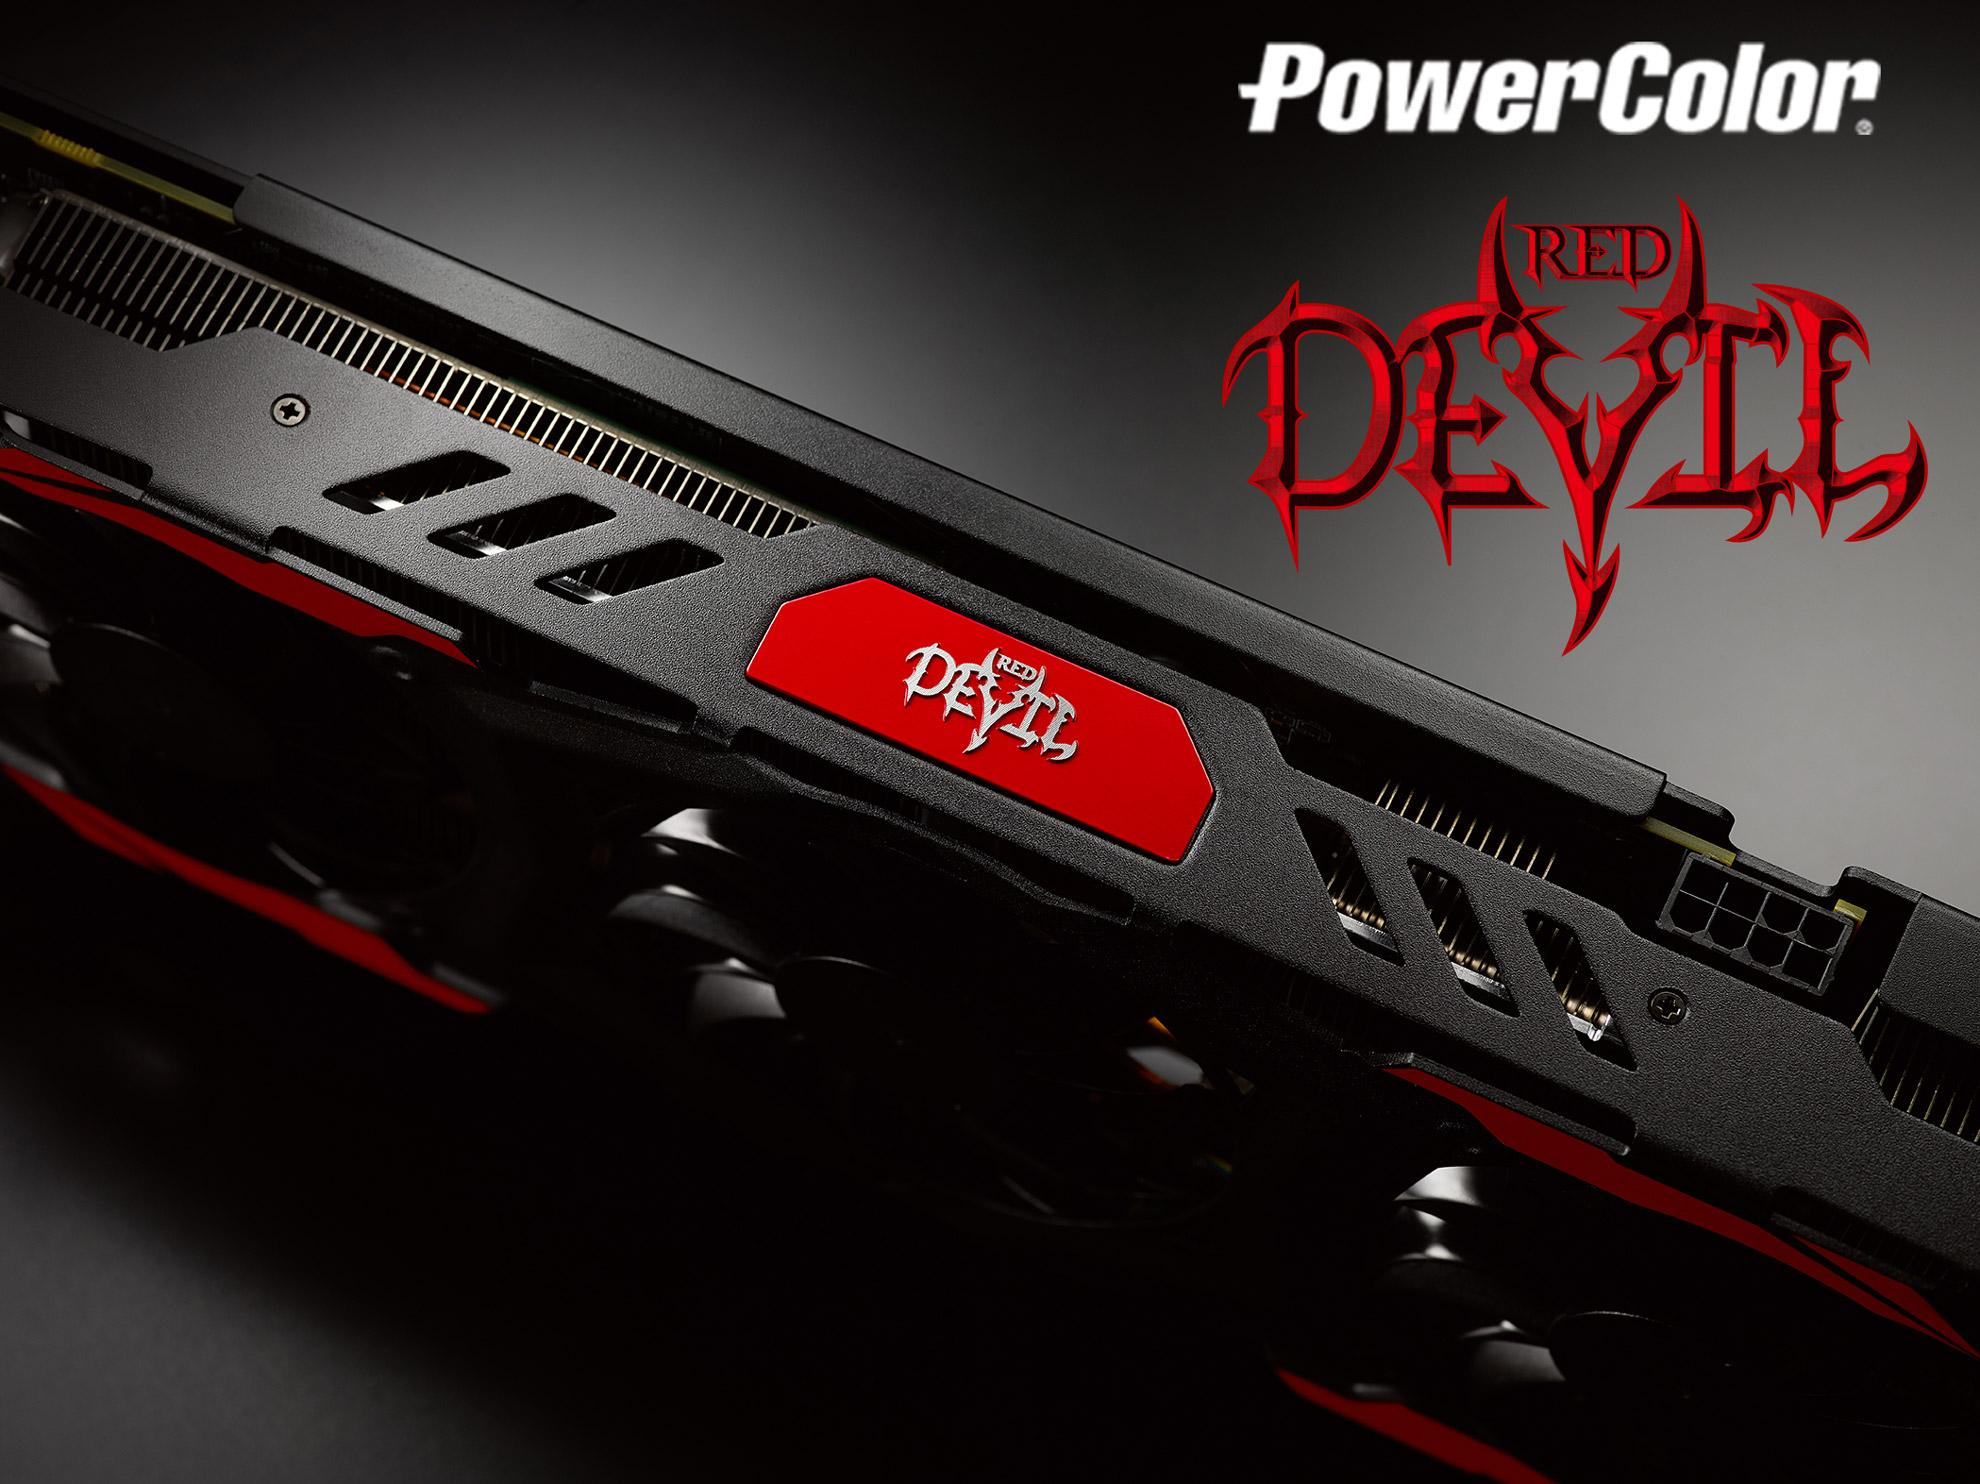 PowerColor正式推出Radeon RX 500 Red Devil系列顯示卡 - XFastest - PowerColor-RX-580-Red-Devil-5.jpg